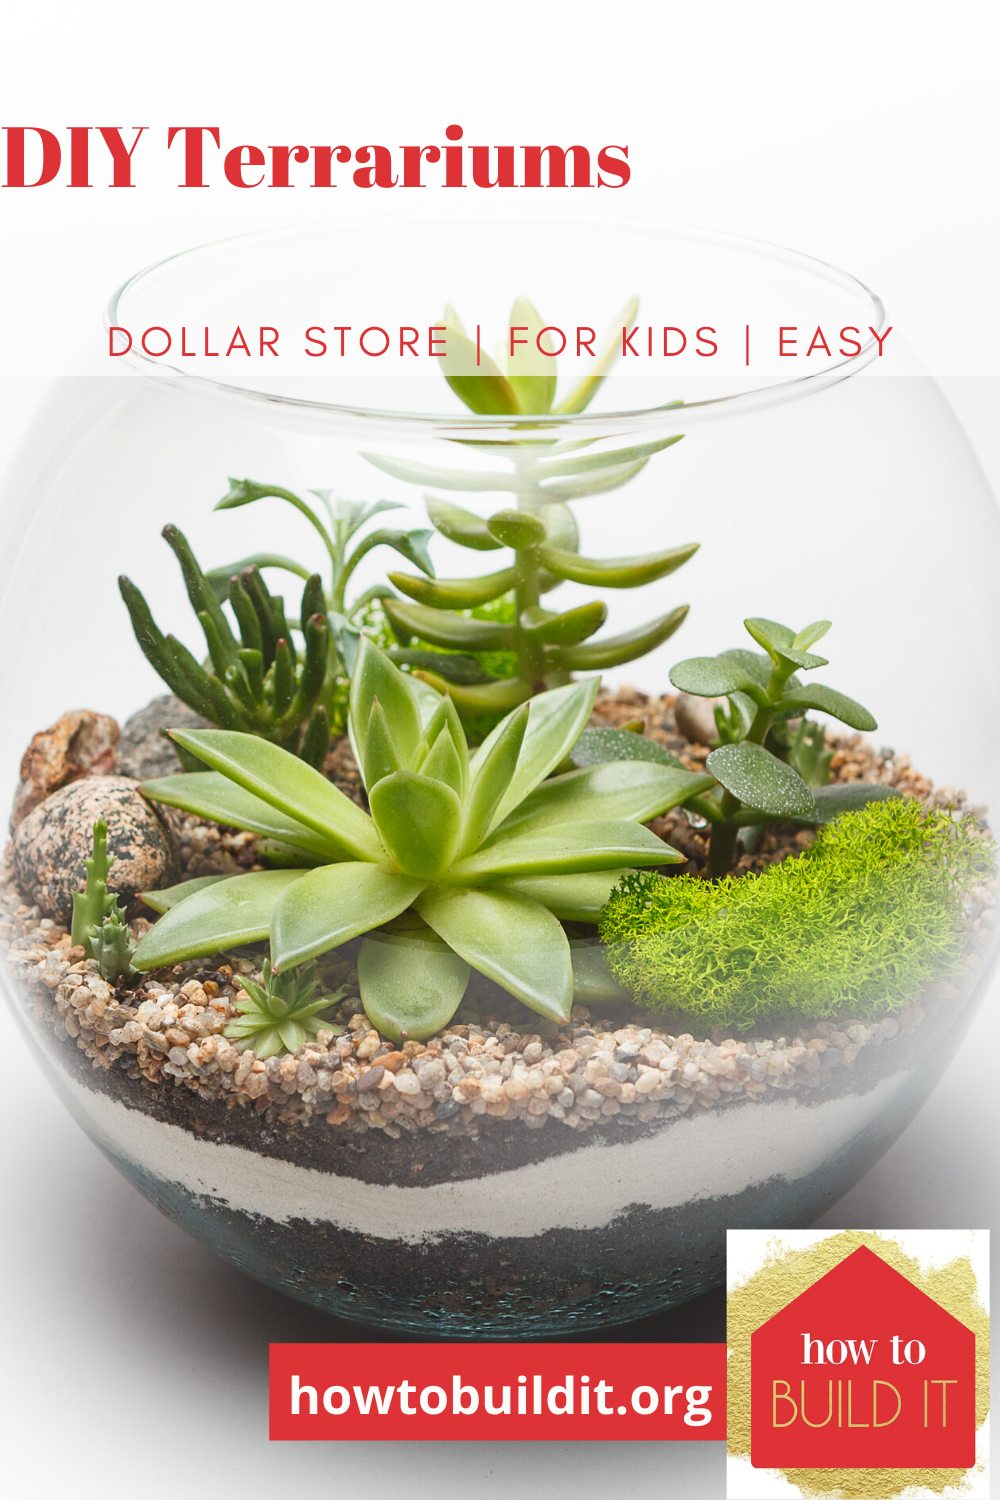 Make your own DIY terrarium and save big. I'll show you how! It's easy and it's a blast! #howtobuilditblog #terrariums #diyterrariums